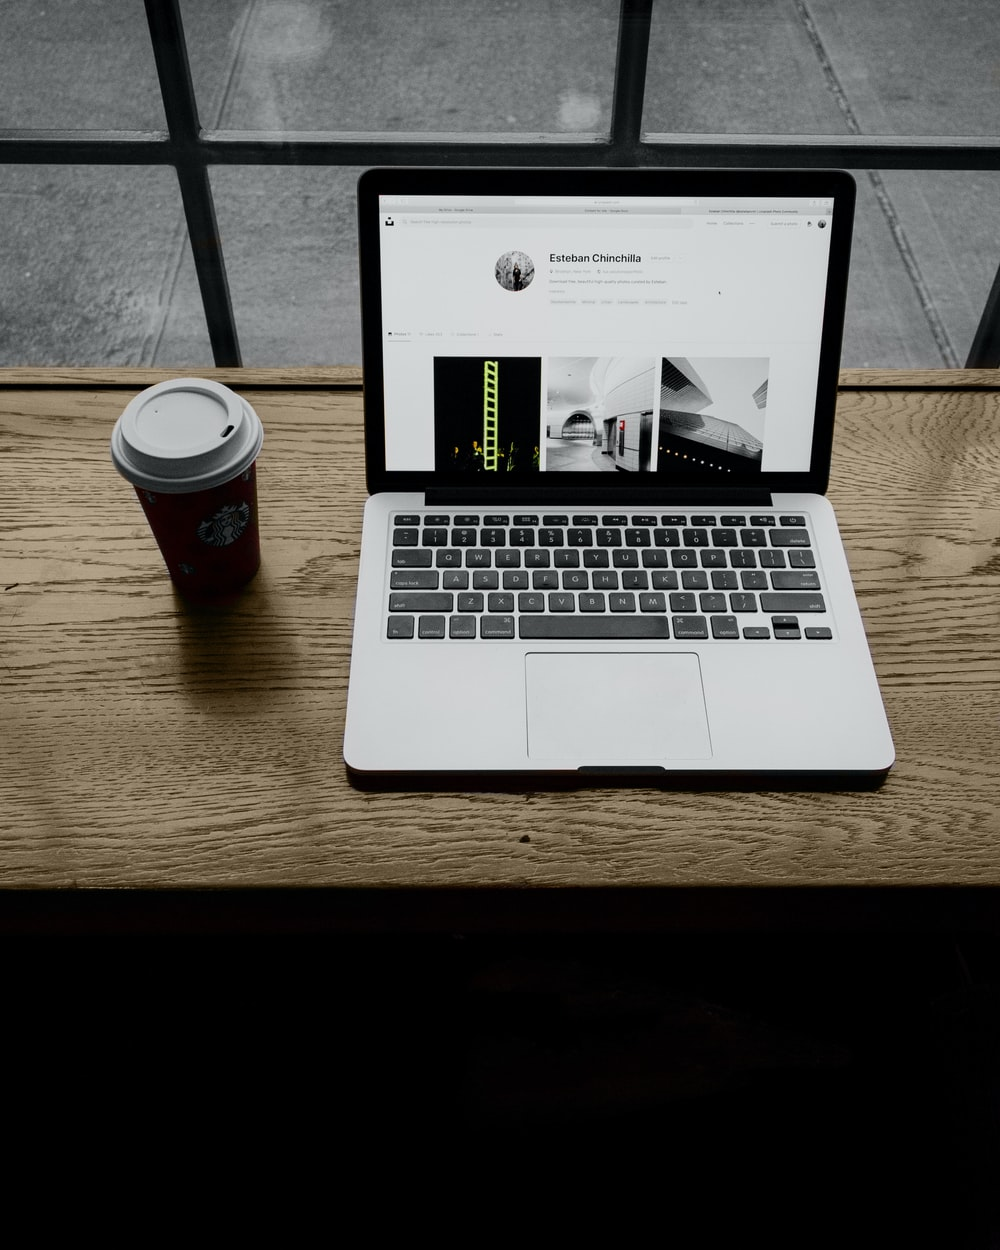 MacBook Pro on table